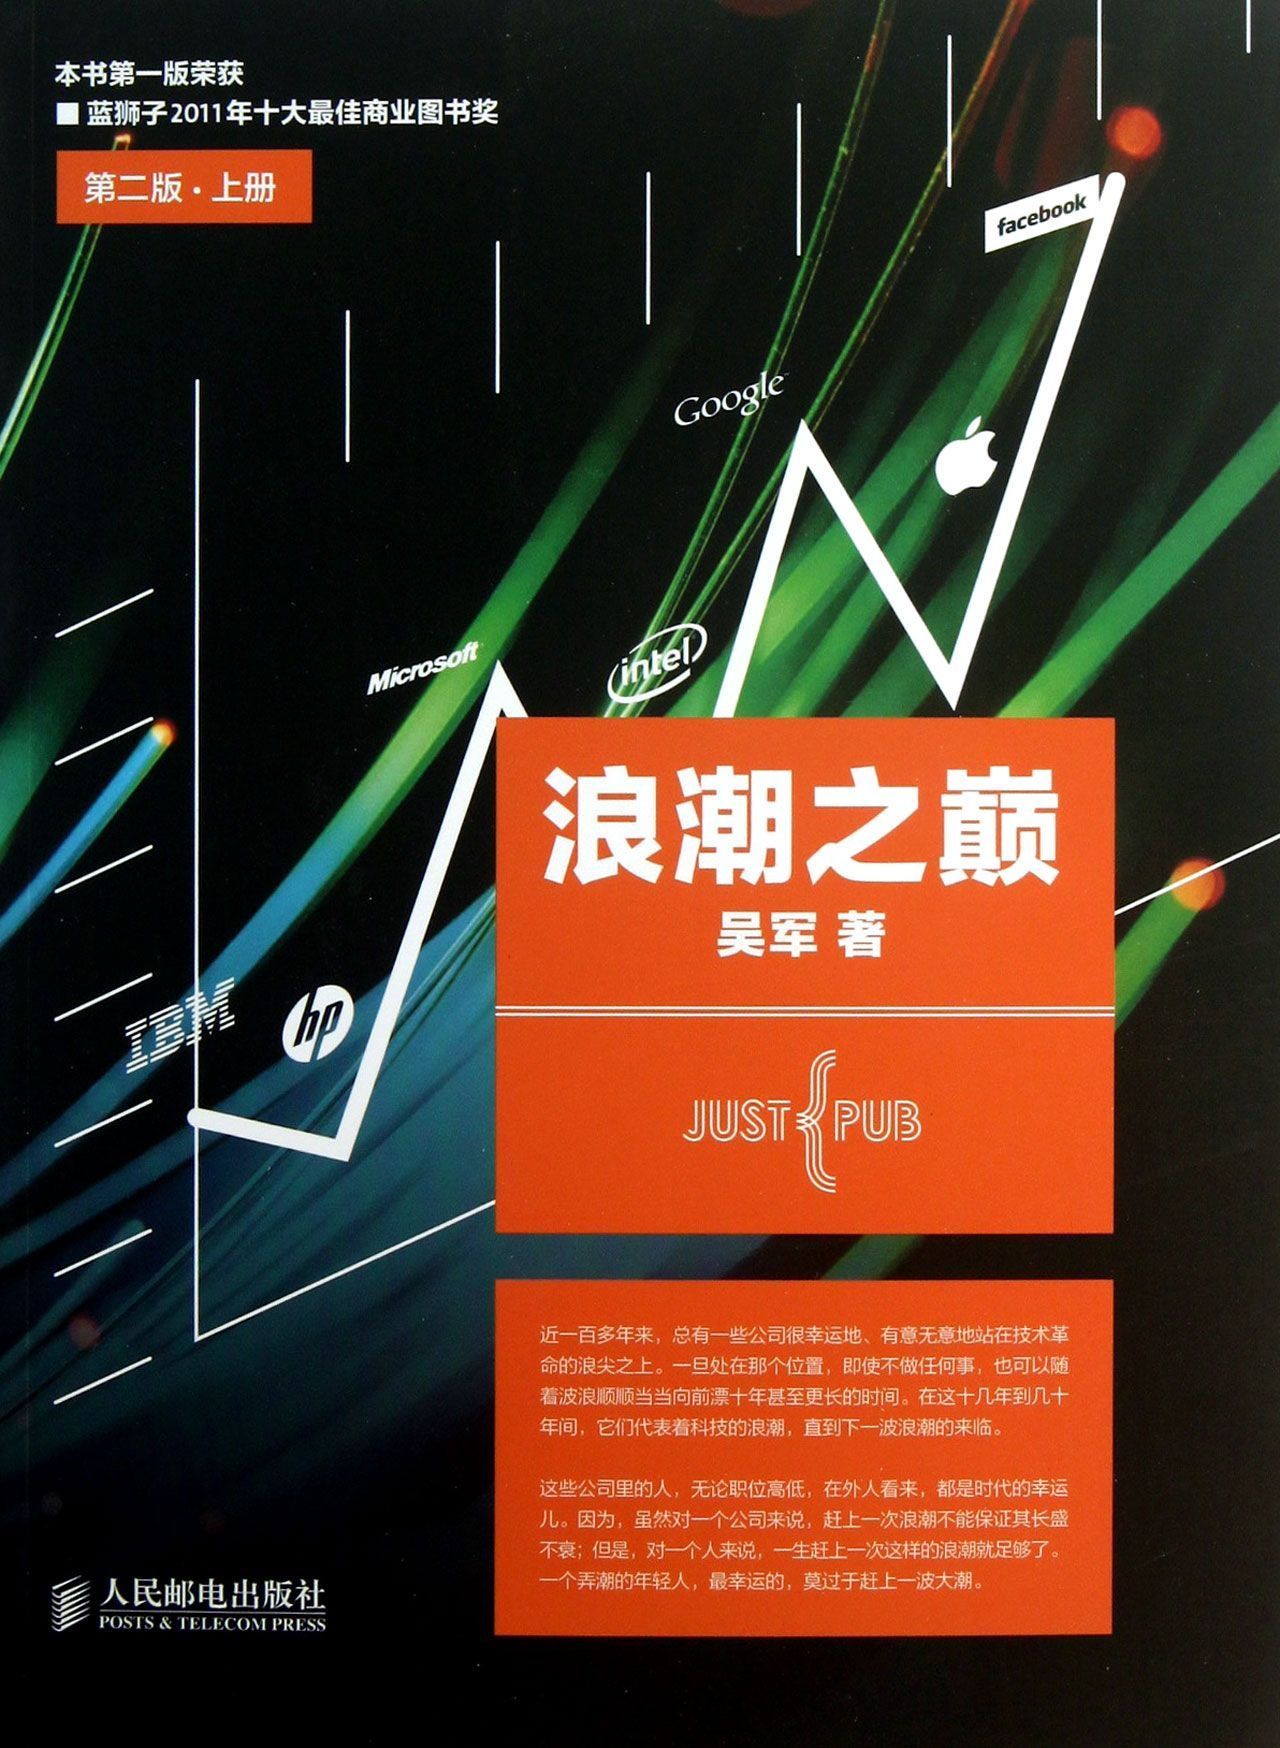 On Top of Tides, 2nd Edition 浪潮之巅(上第2版) Wu Jun 吴军